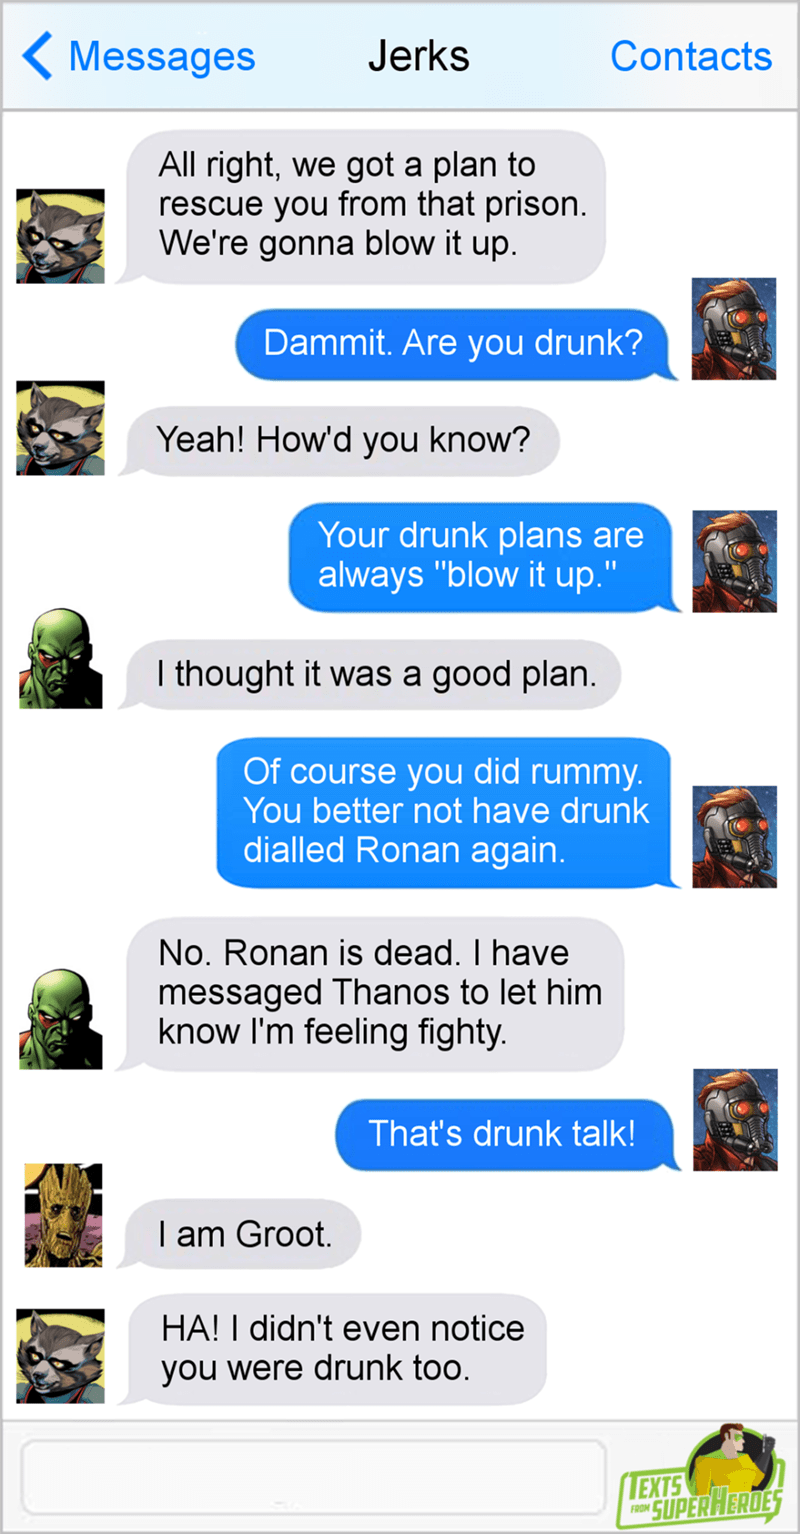 """Text - Jerks Messages Contacts All right, we got a plan to rescue you from that prison. We're gonna blow it up. Dammit. Are you drunk? Yeah! How'd you know? Your drunk plans are always """"blow it up."""" I thought it was a good plan. Of course you did rummy You better not have drunk dialled Ronan again. No. Ronan is dead. I have messaged Thanos to let him know I'm feeling fighty. That's drunk talk! I am Groot. HA! I didn't even notice you were drunk too. EXTS SUPERHERDES FROM"""